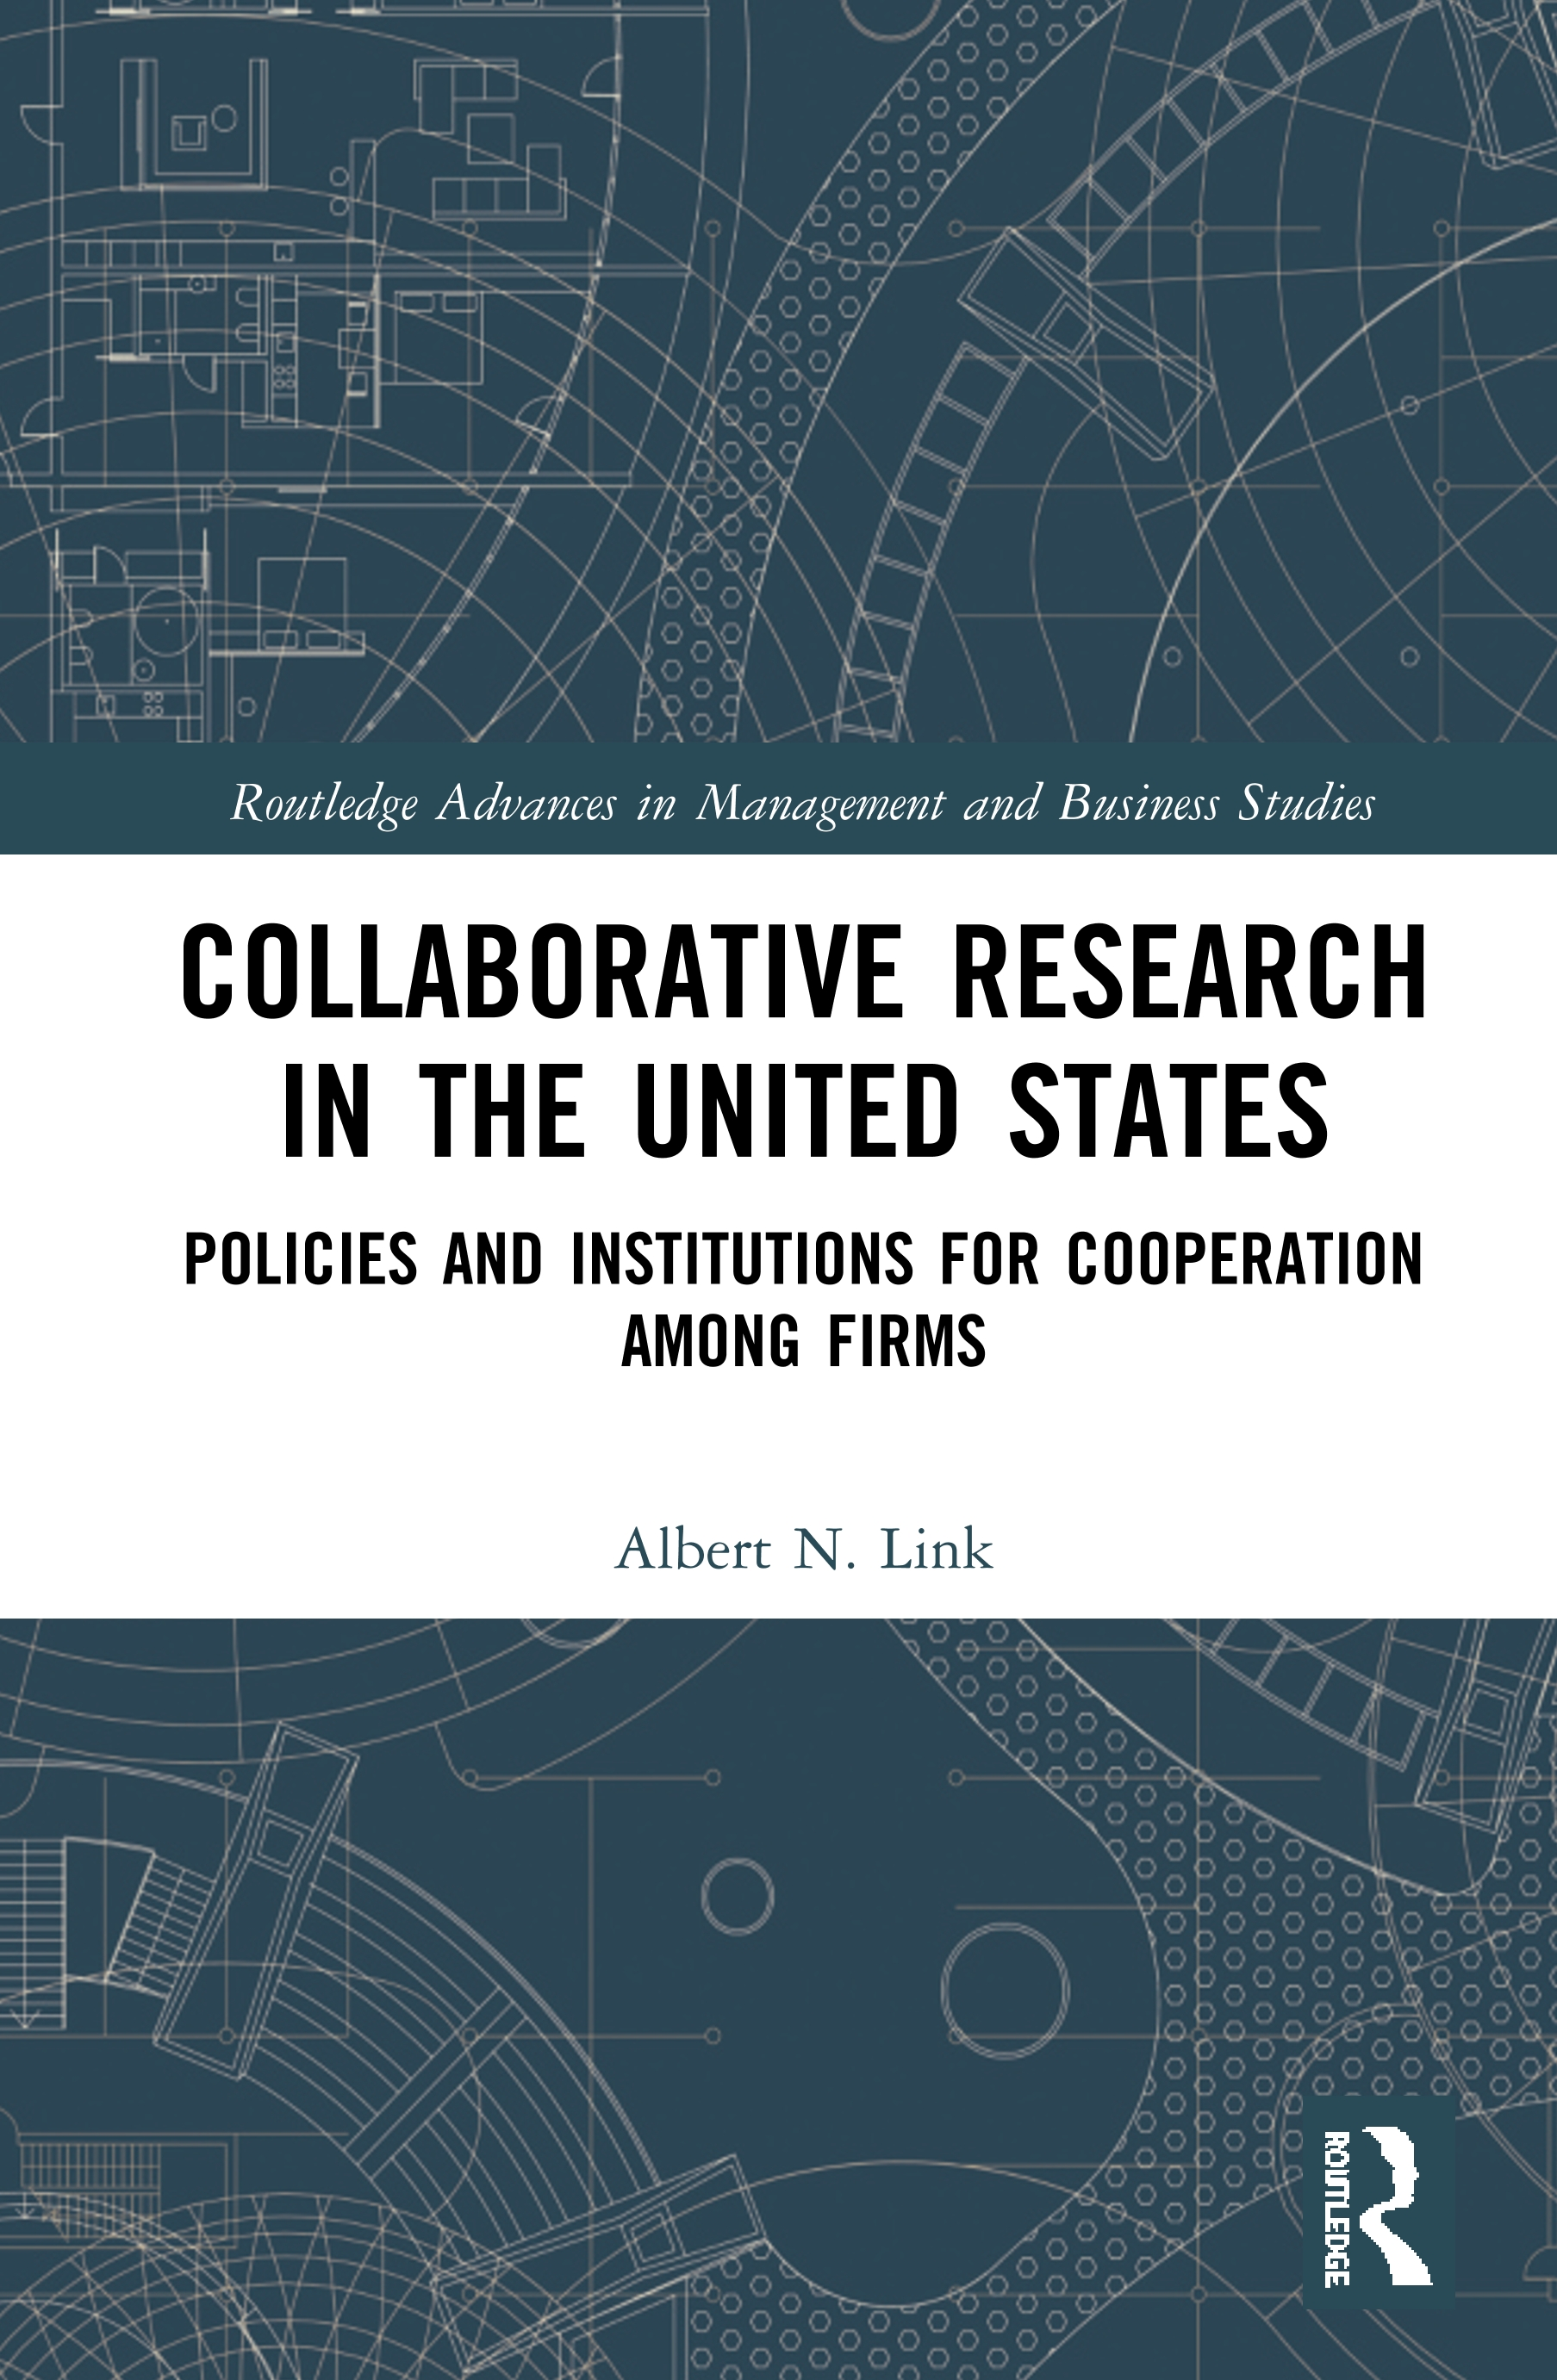 Collaborative Research in the United States: Policies and Institutions for Cooperation among Firms book cover